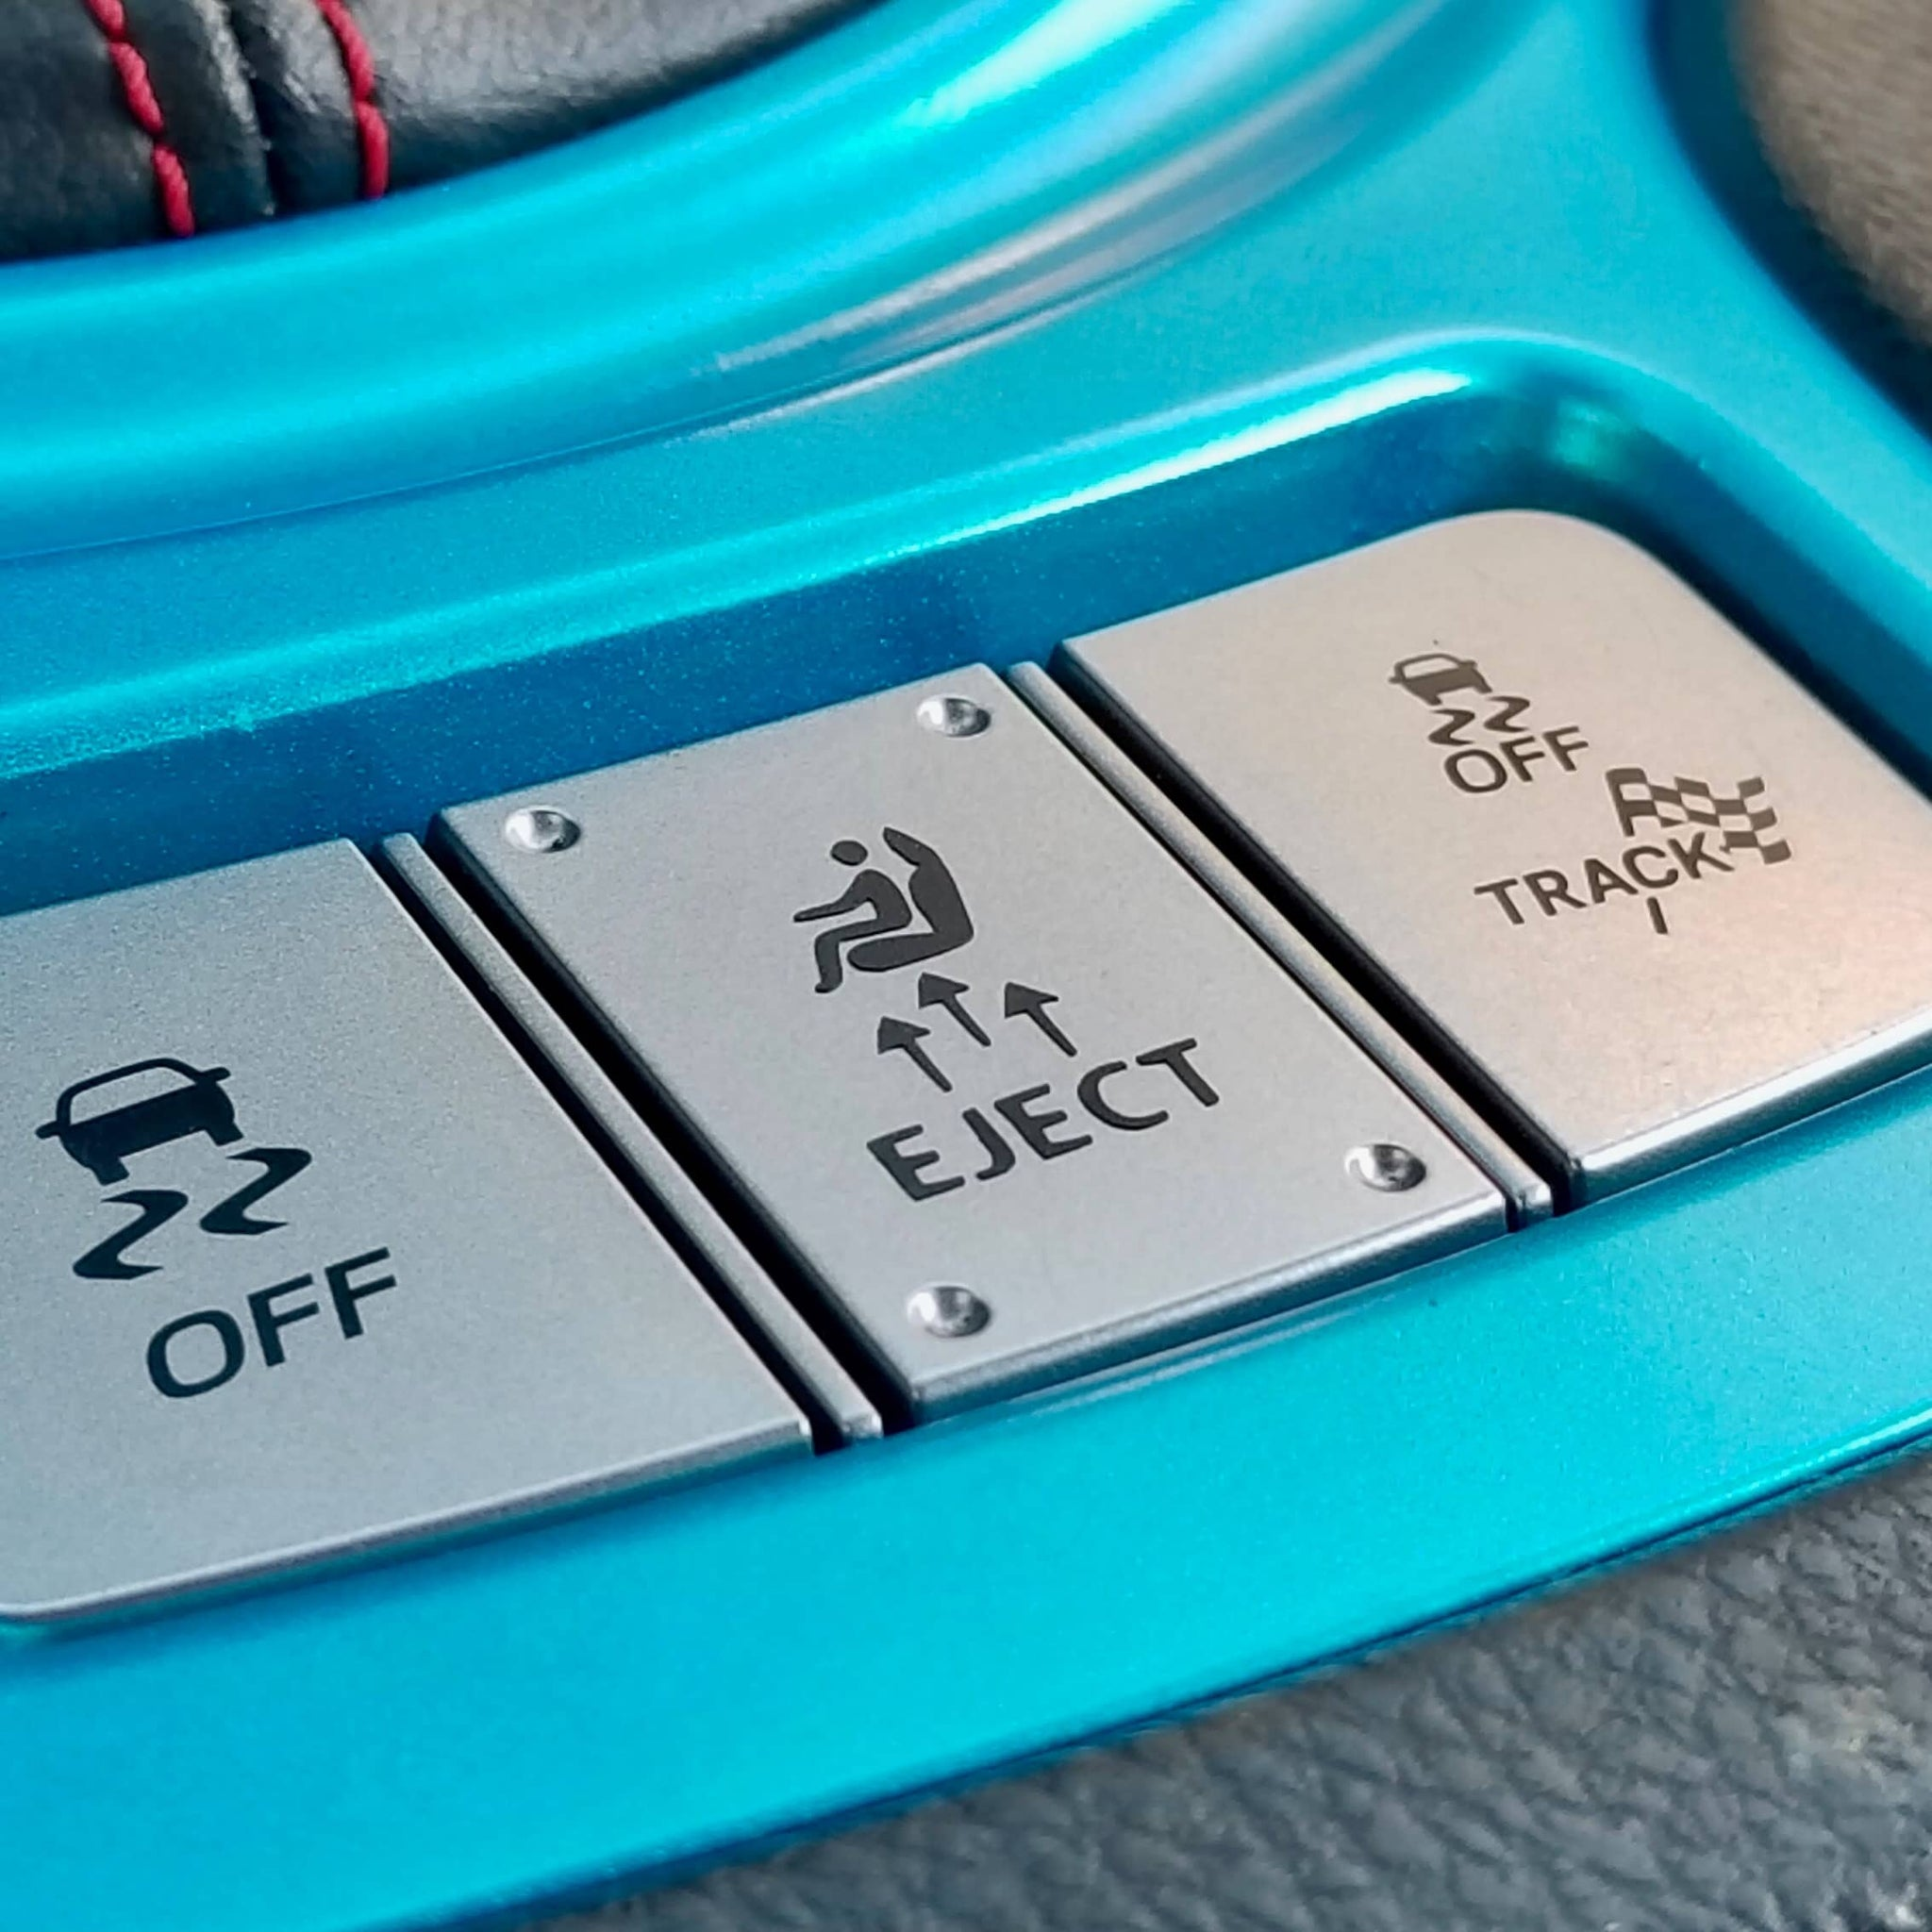 Eject Seat Button for 86, BRZ, FR-S